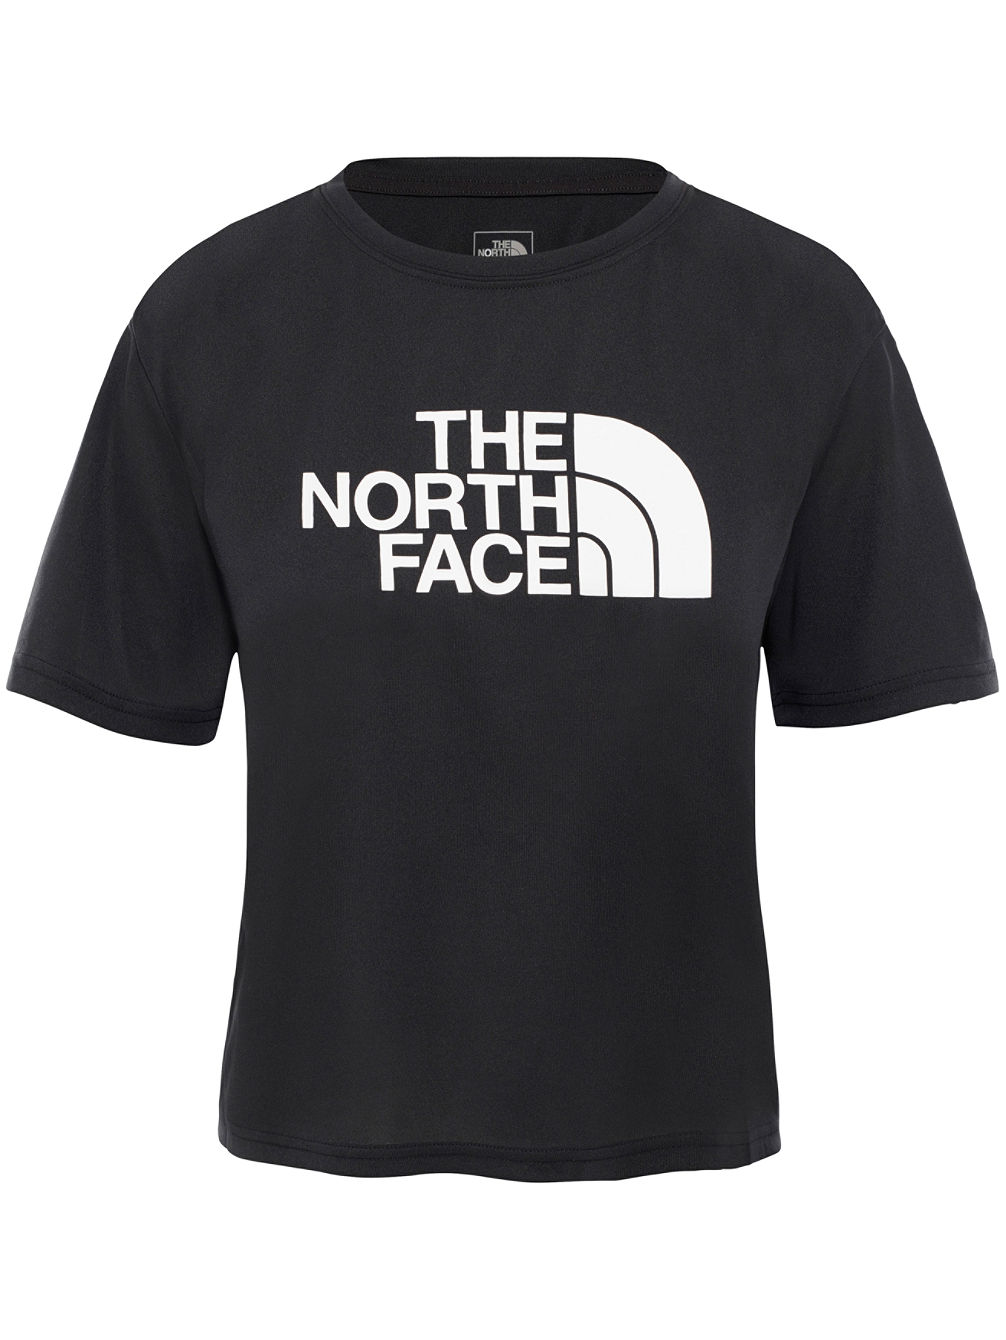 Buy THE NORTH FACE Train N Logo Crop T-Shirt online at blue-tomato.com e2c808782